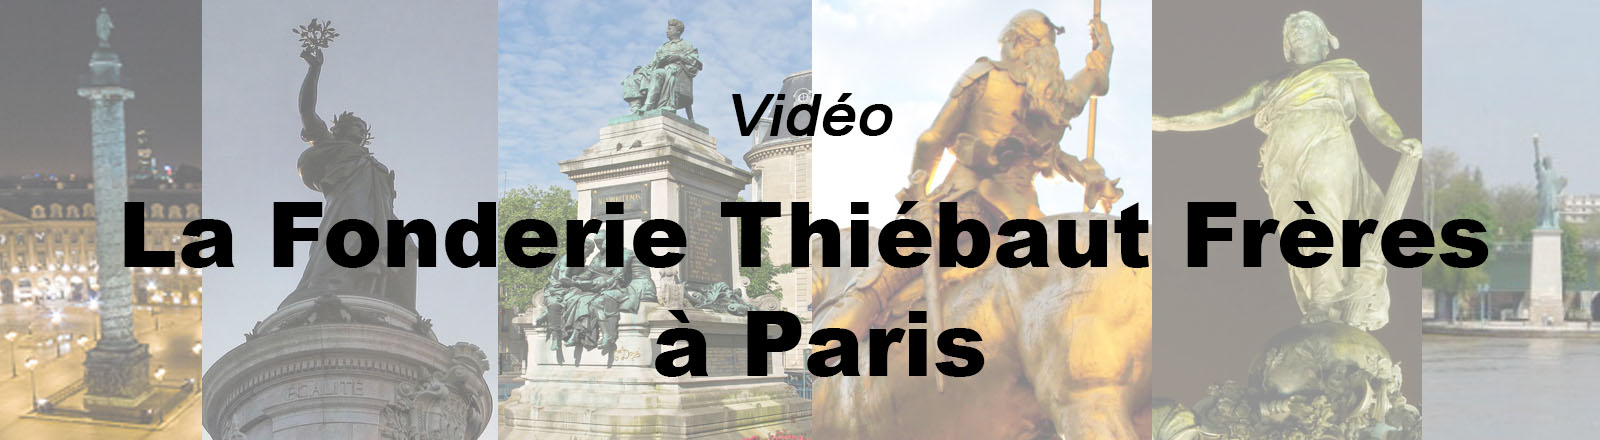 video thiebaut freres à paris